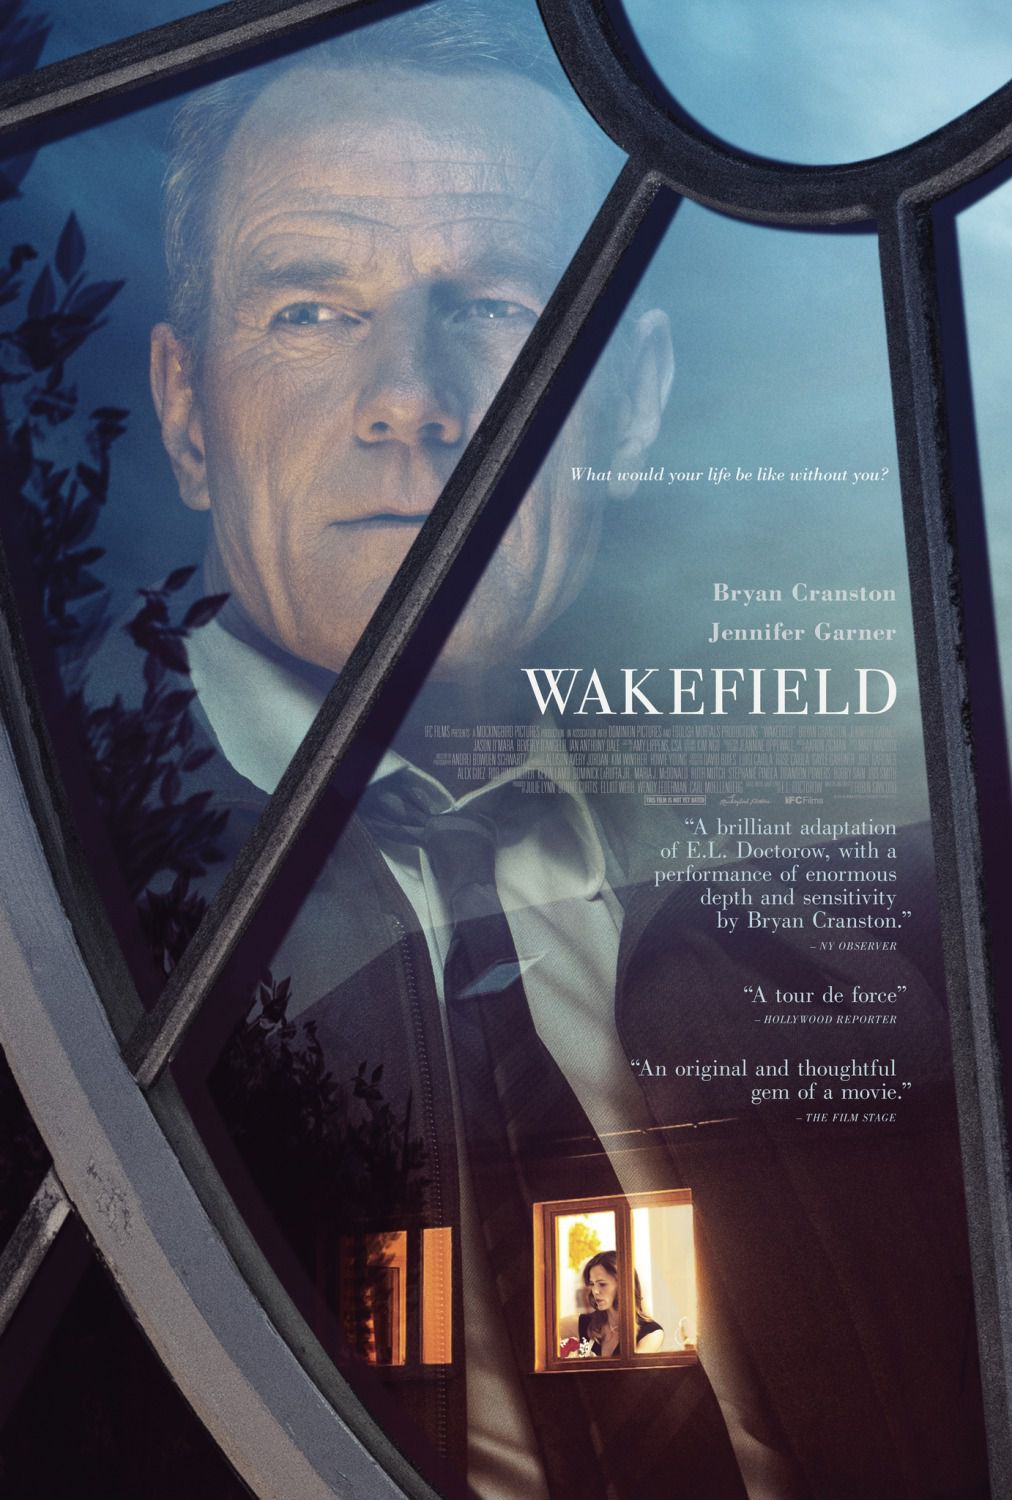 Wakefield - what would your life be like without you? - Bryan Cranston - Jennifer Garner